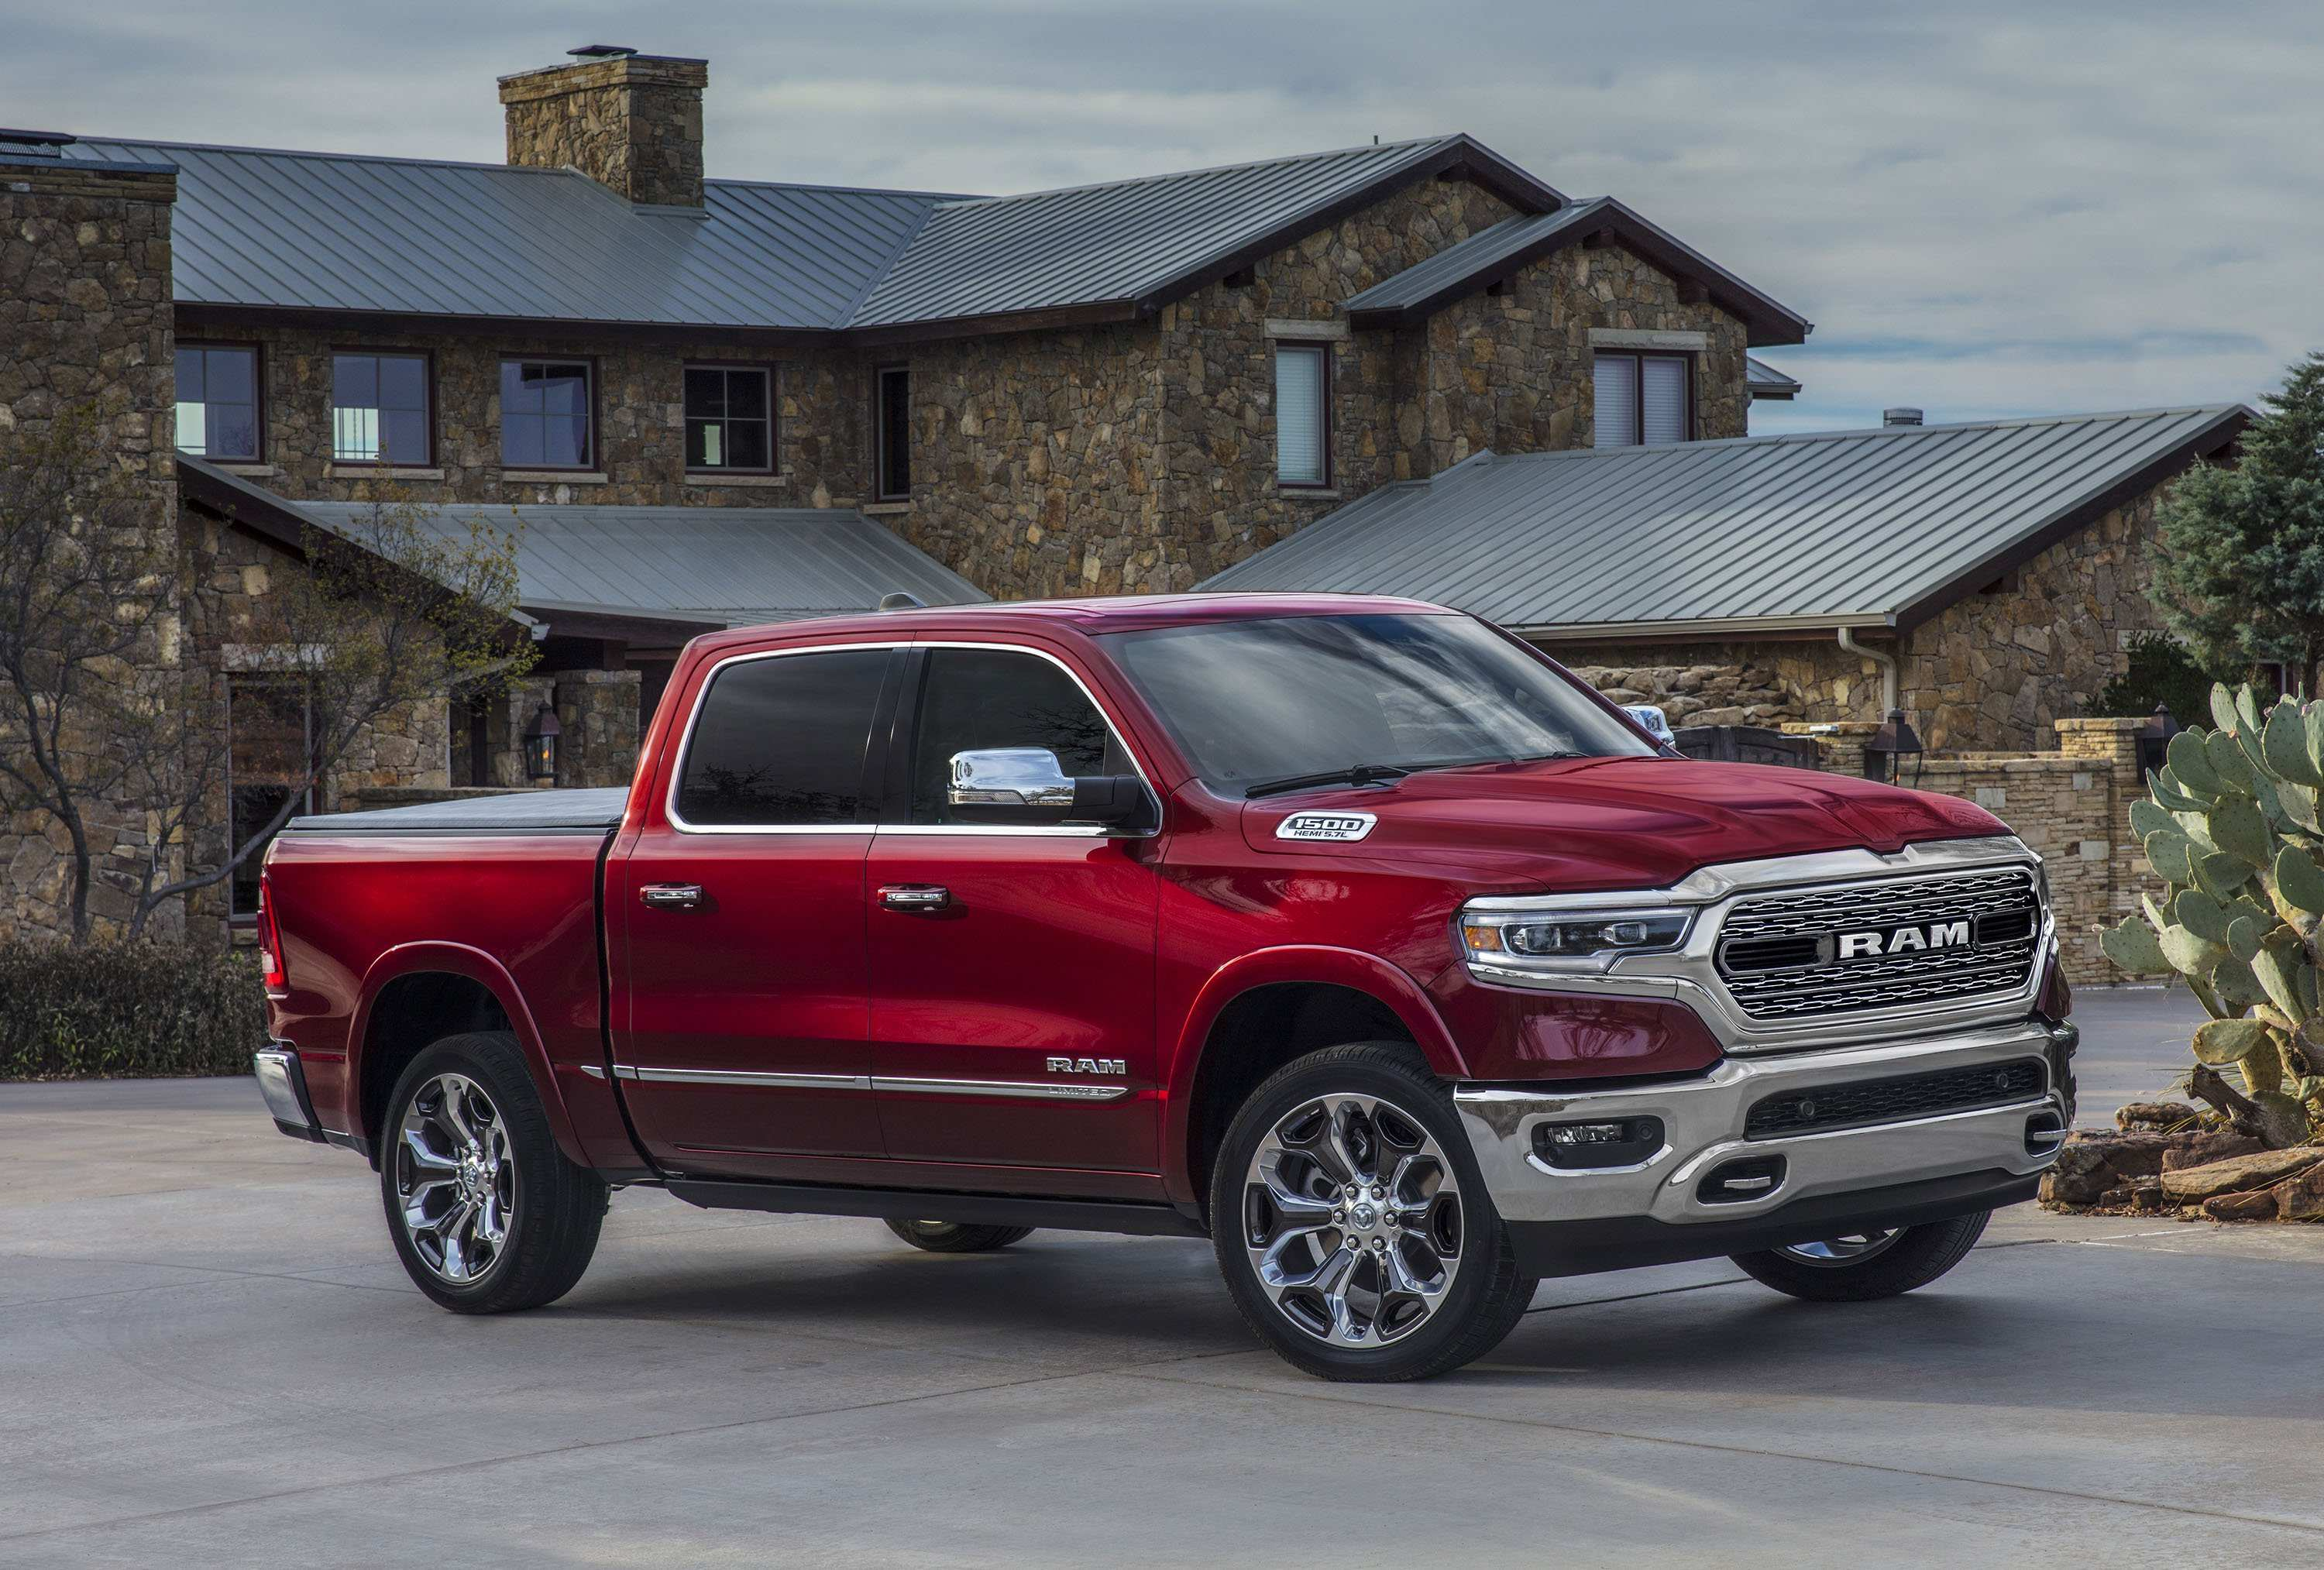 14 New 2020 Dodge Ram Truck Images